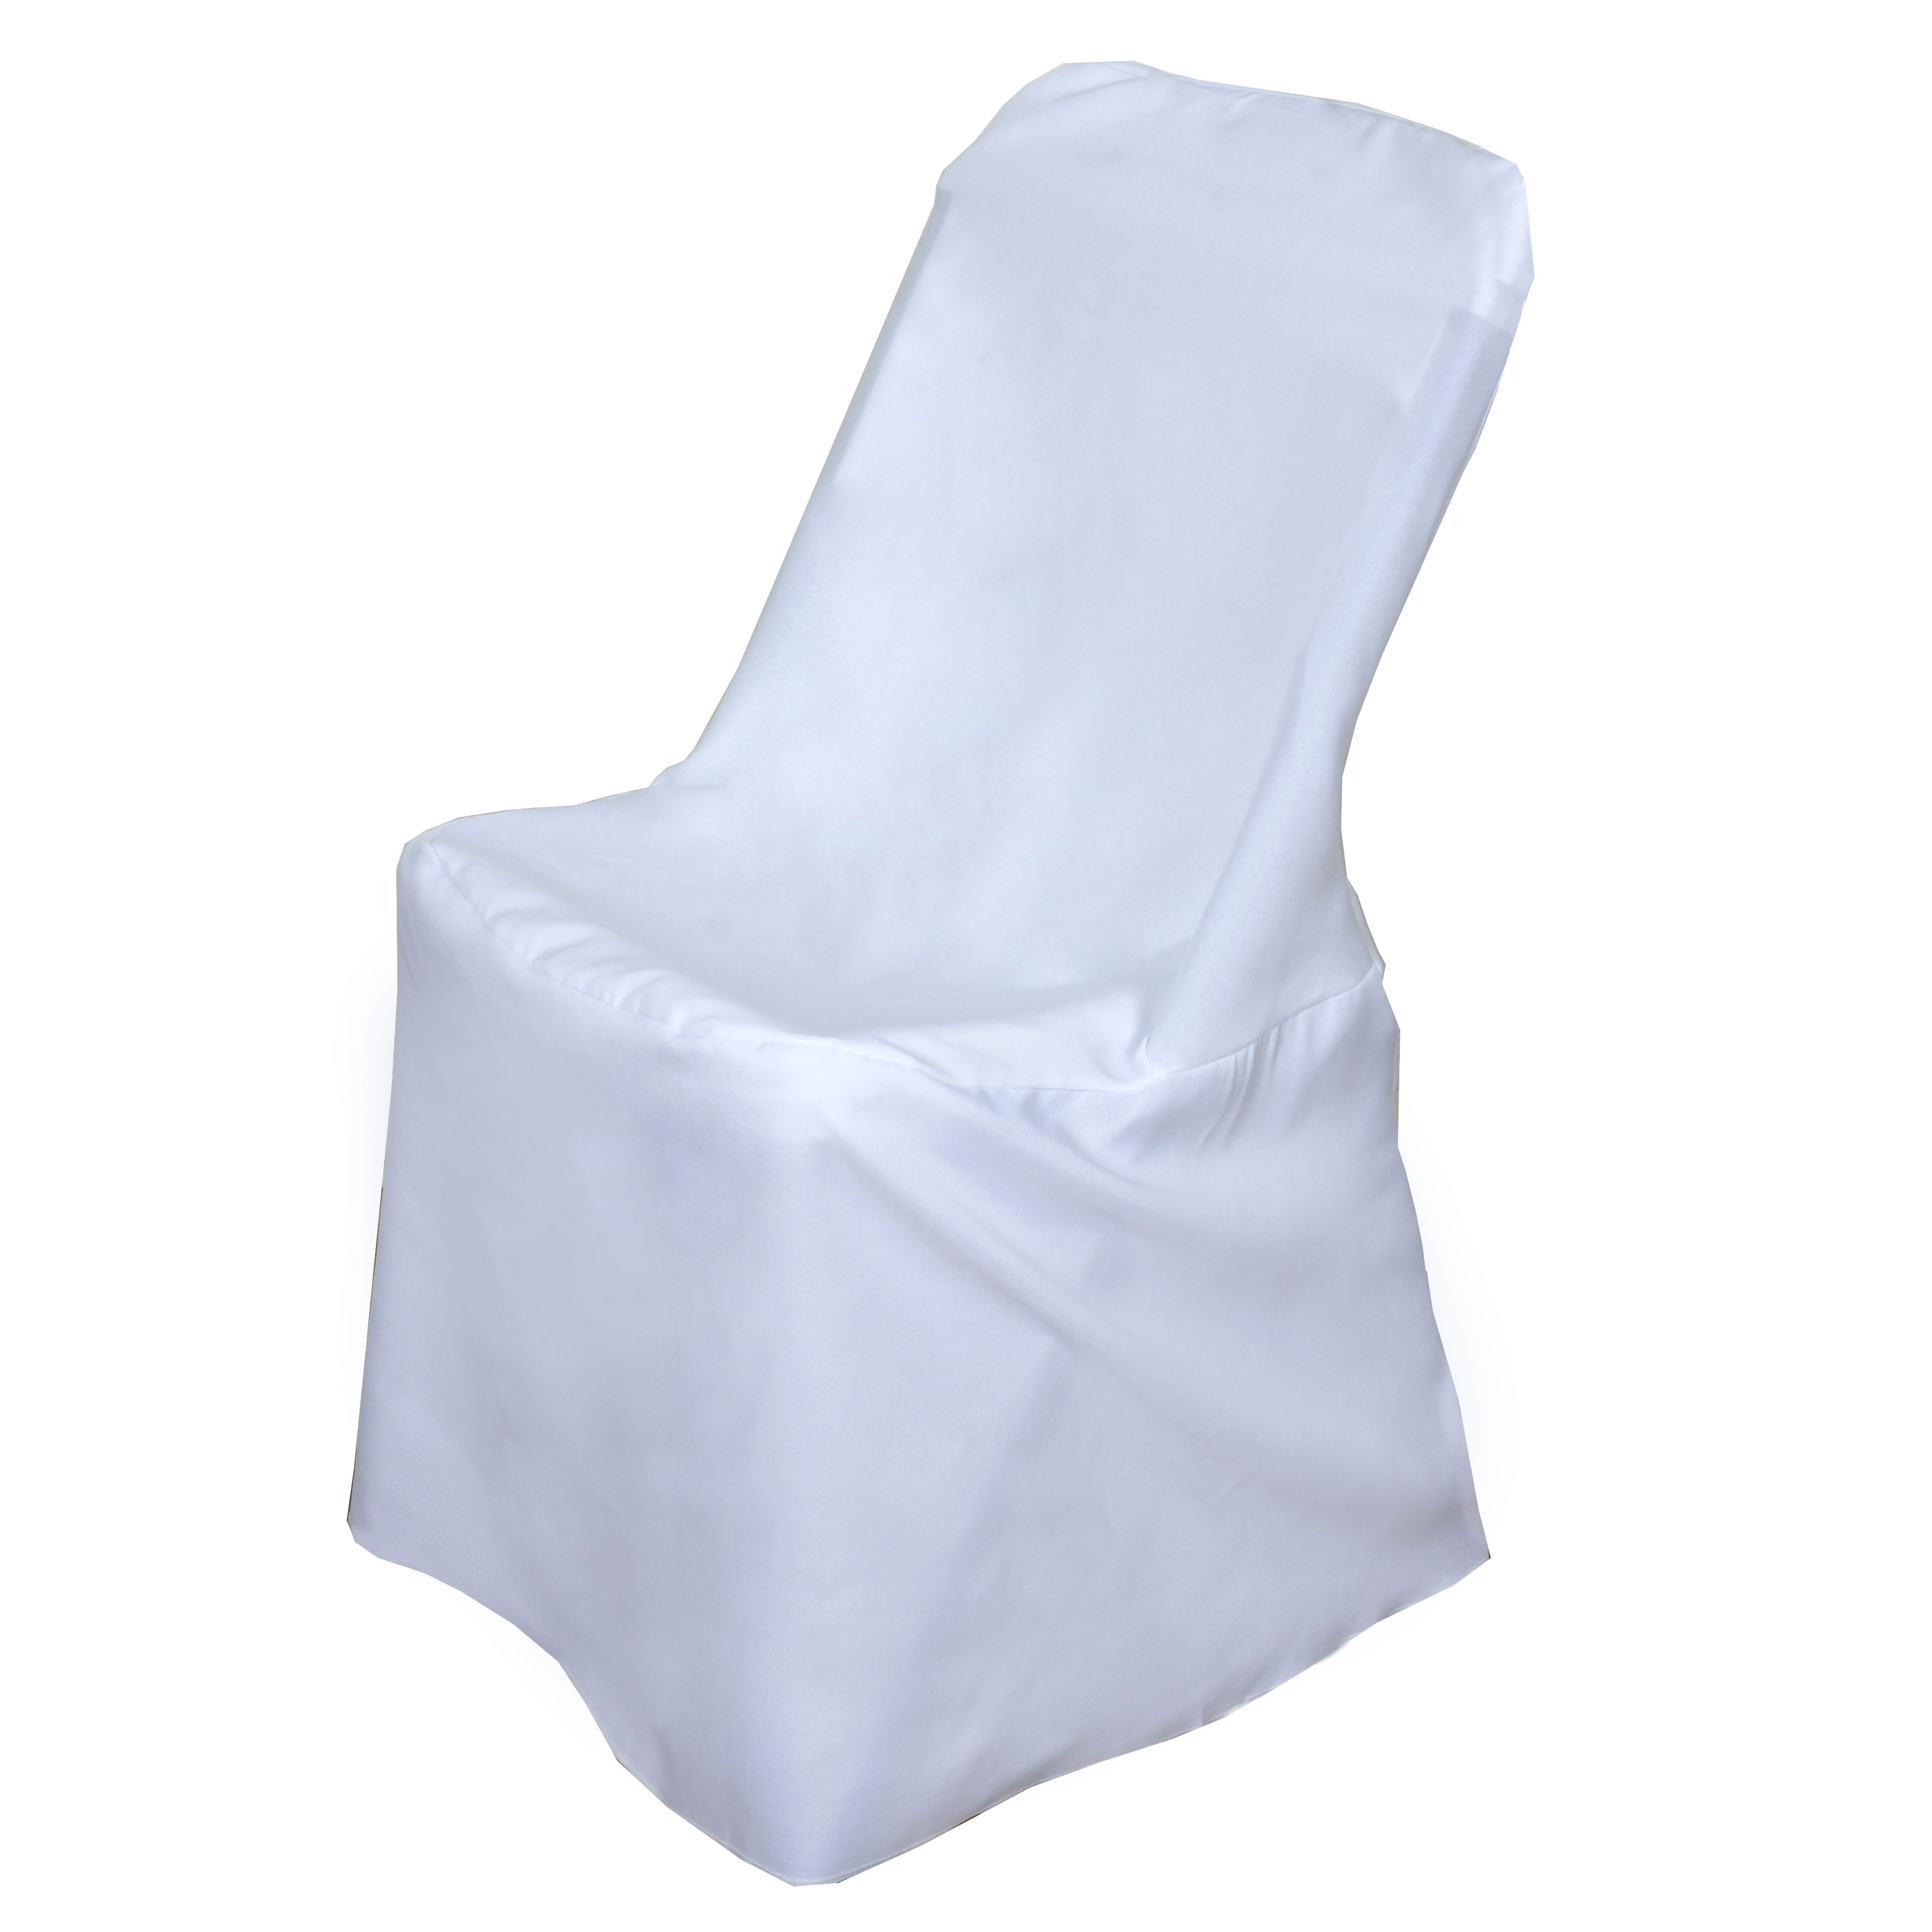 150 Pcs Lifetime Folding Chair Covers Slipcovers Polyester Wedding Party Line